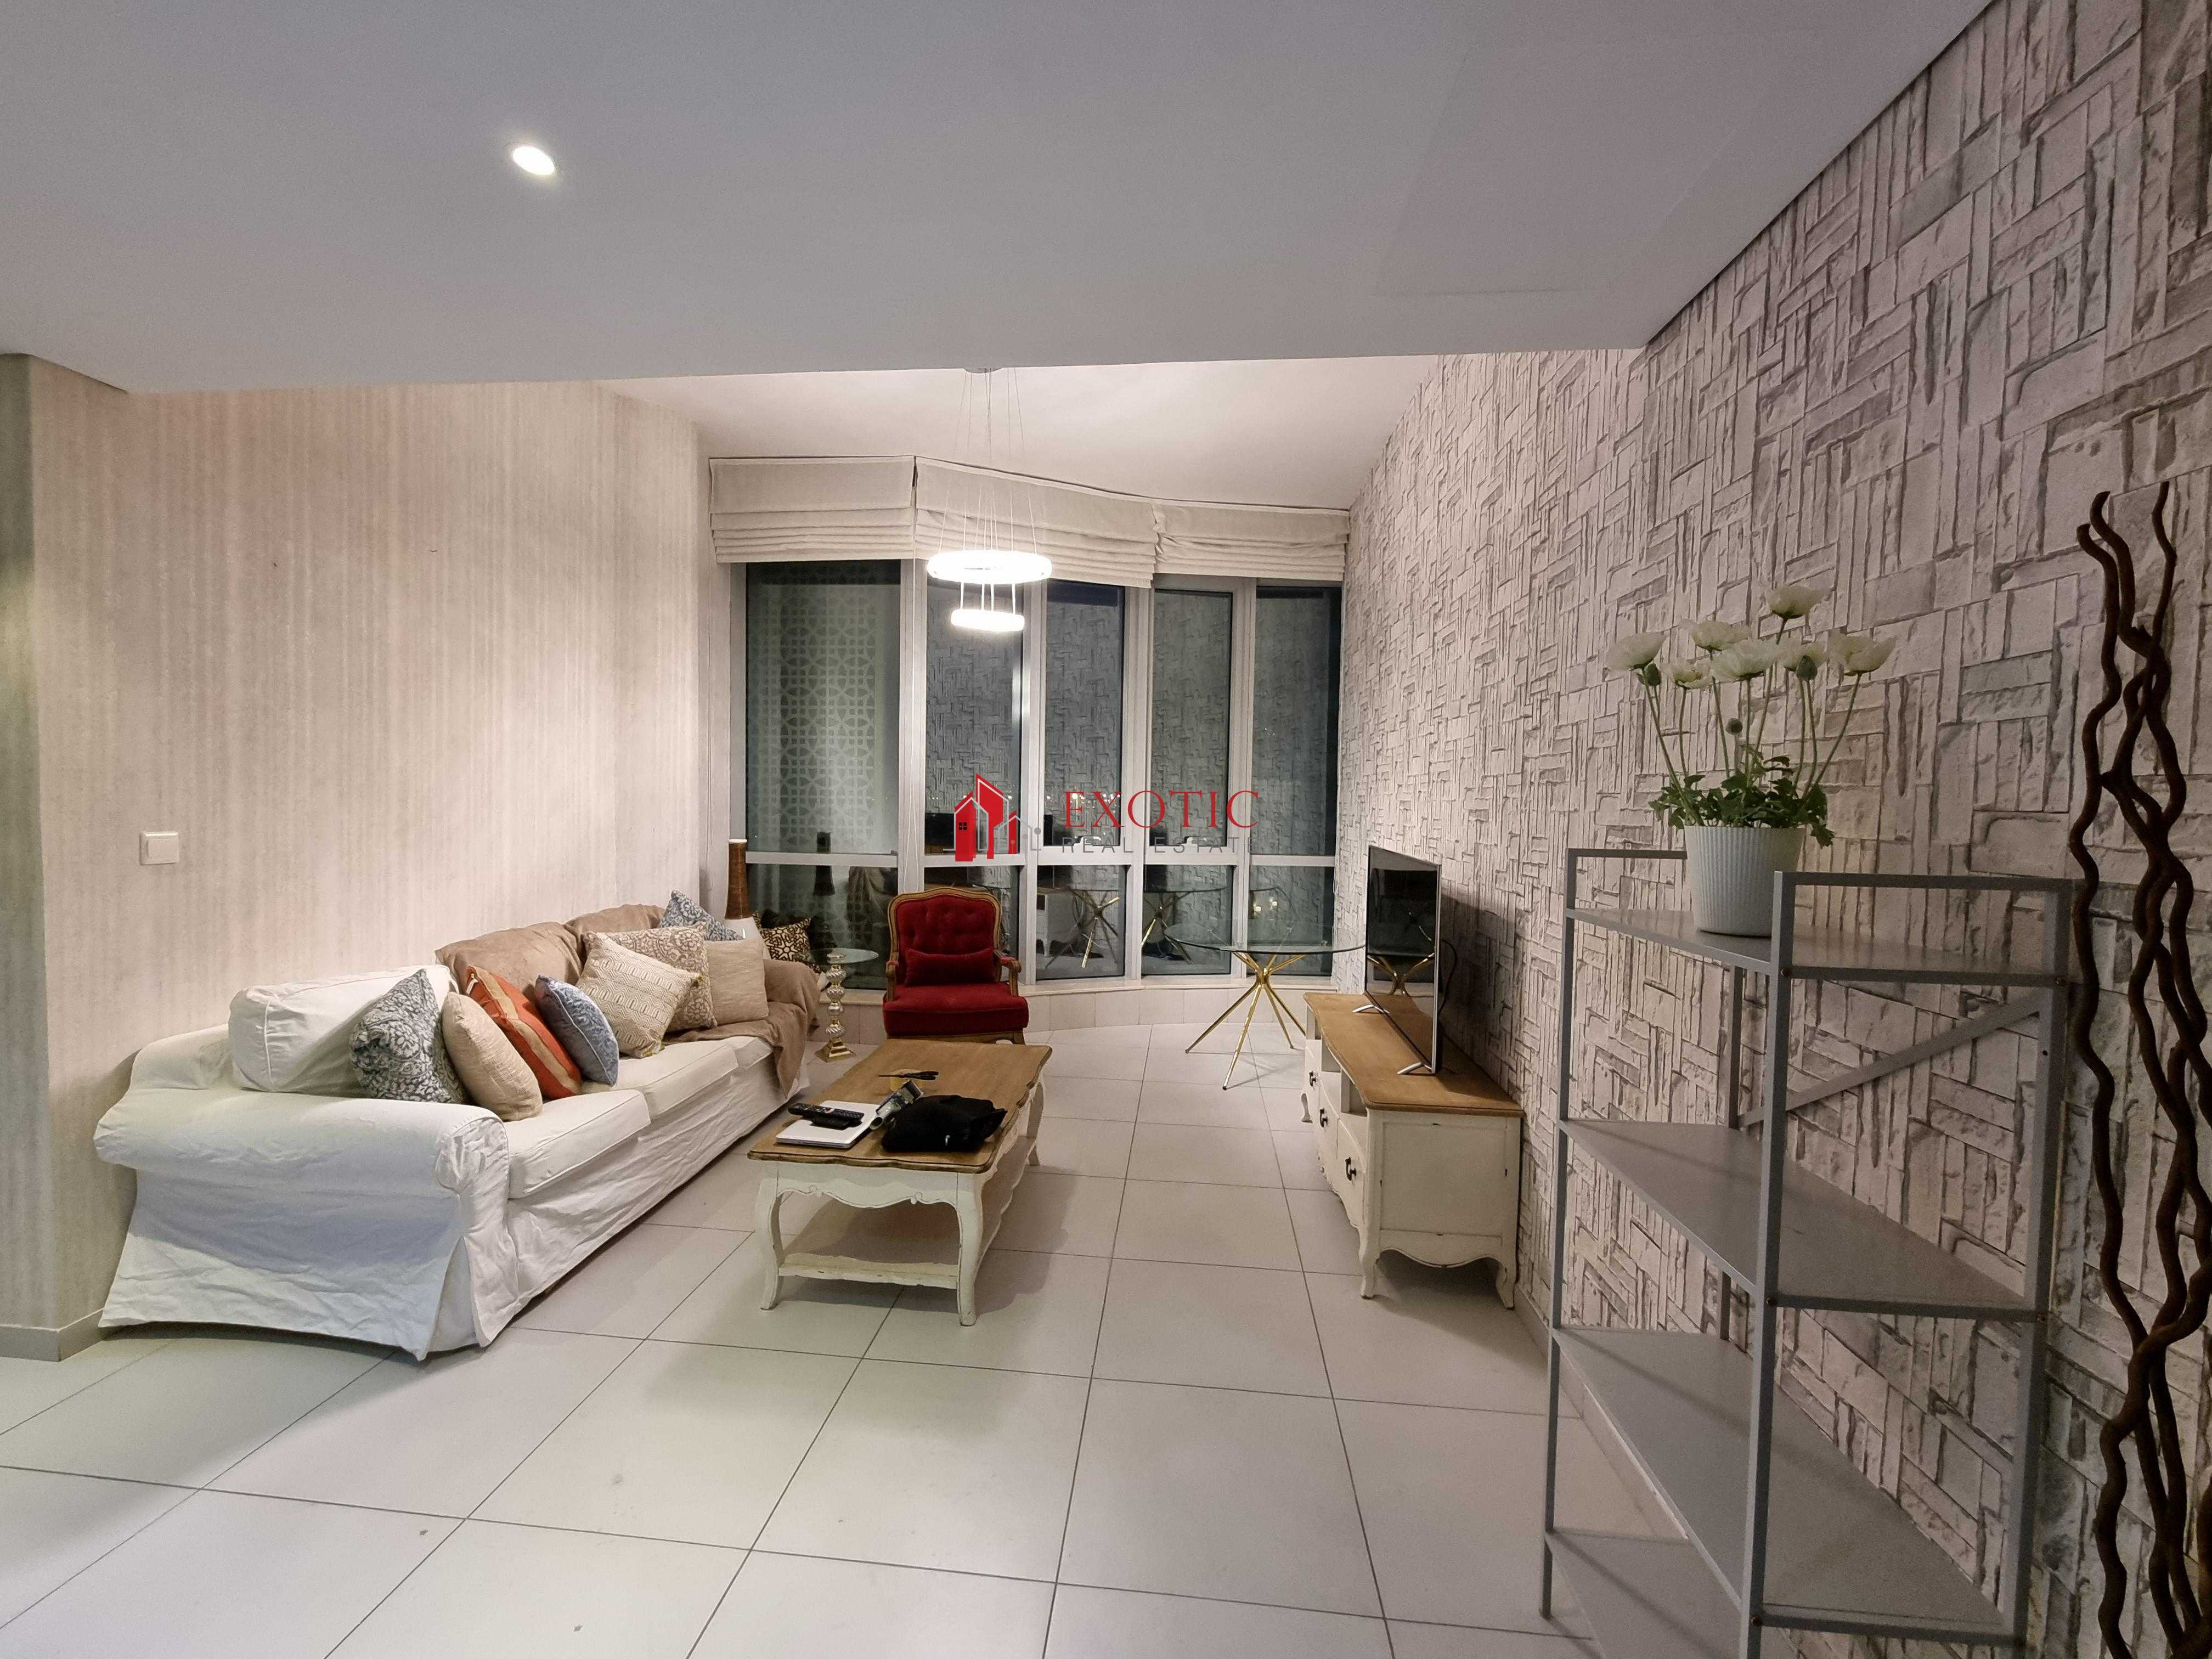 GREAT LAYOUT SPACIOUS 1BR APARTMENT FURNISHED